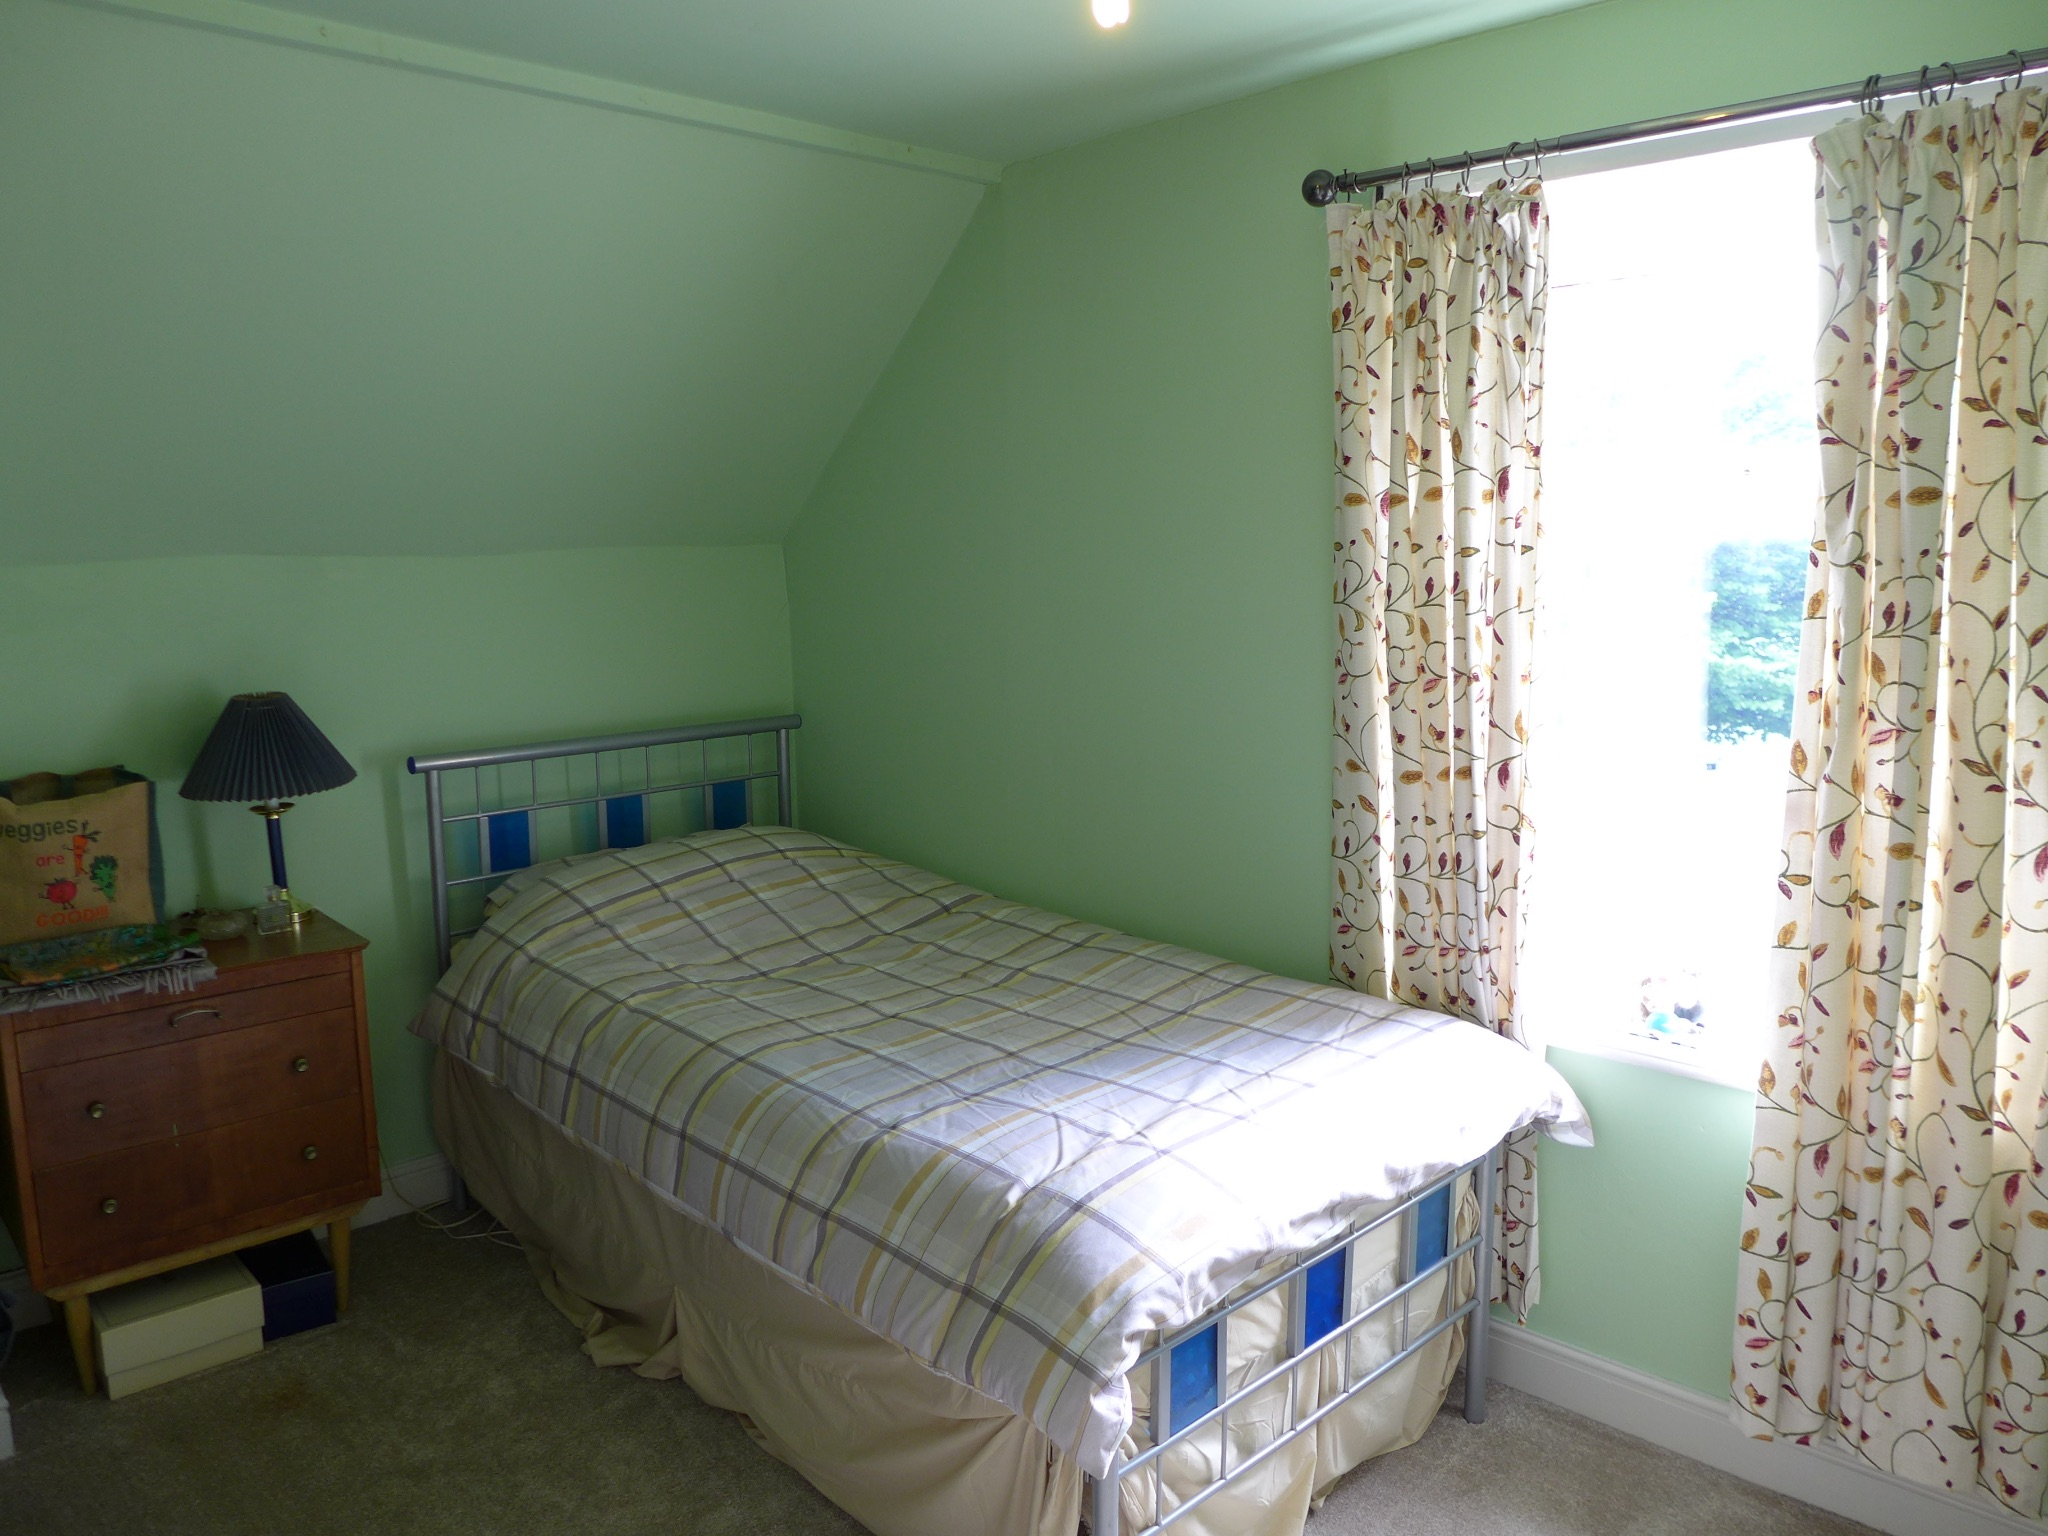 3 bedroom end terraced house For Sale in Todmorden - Photograph 15.